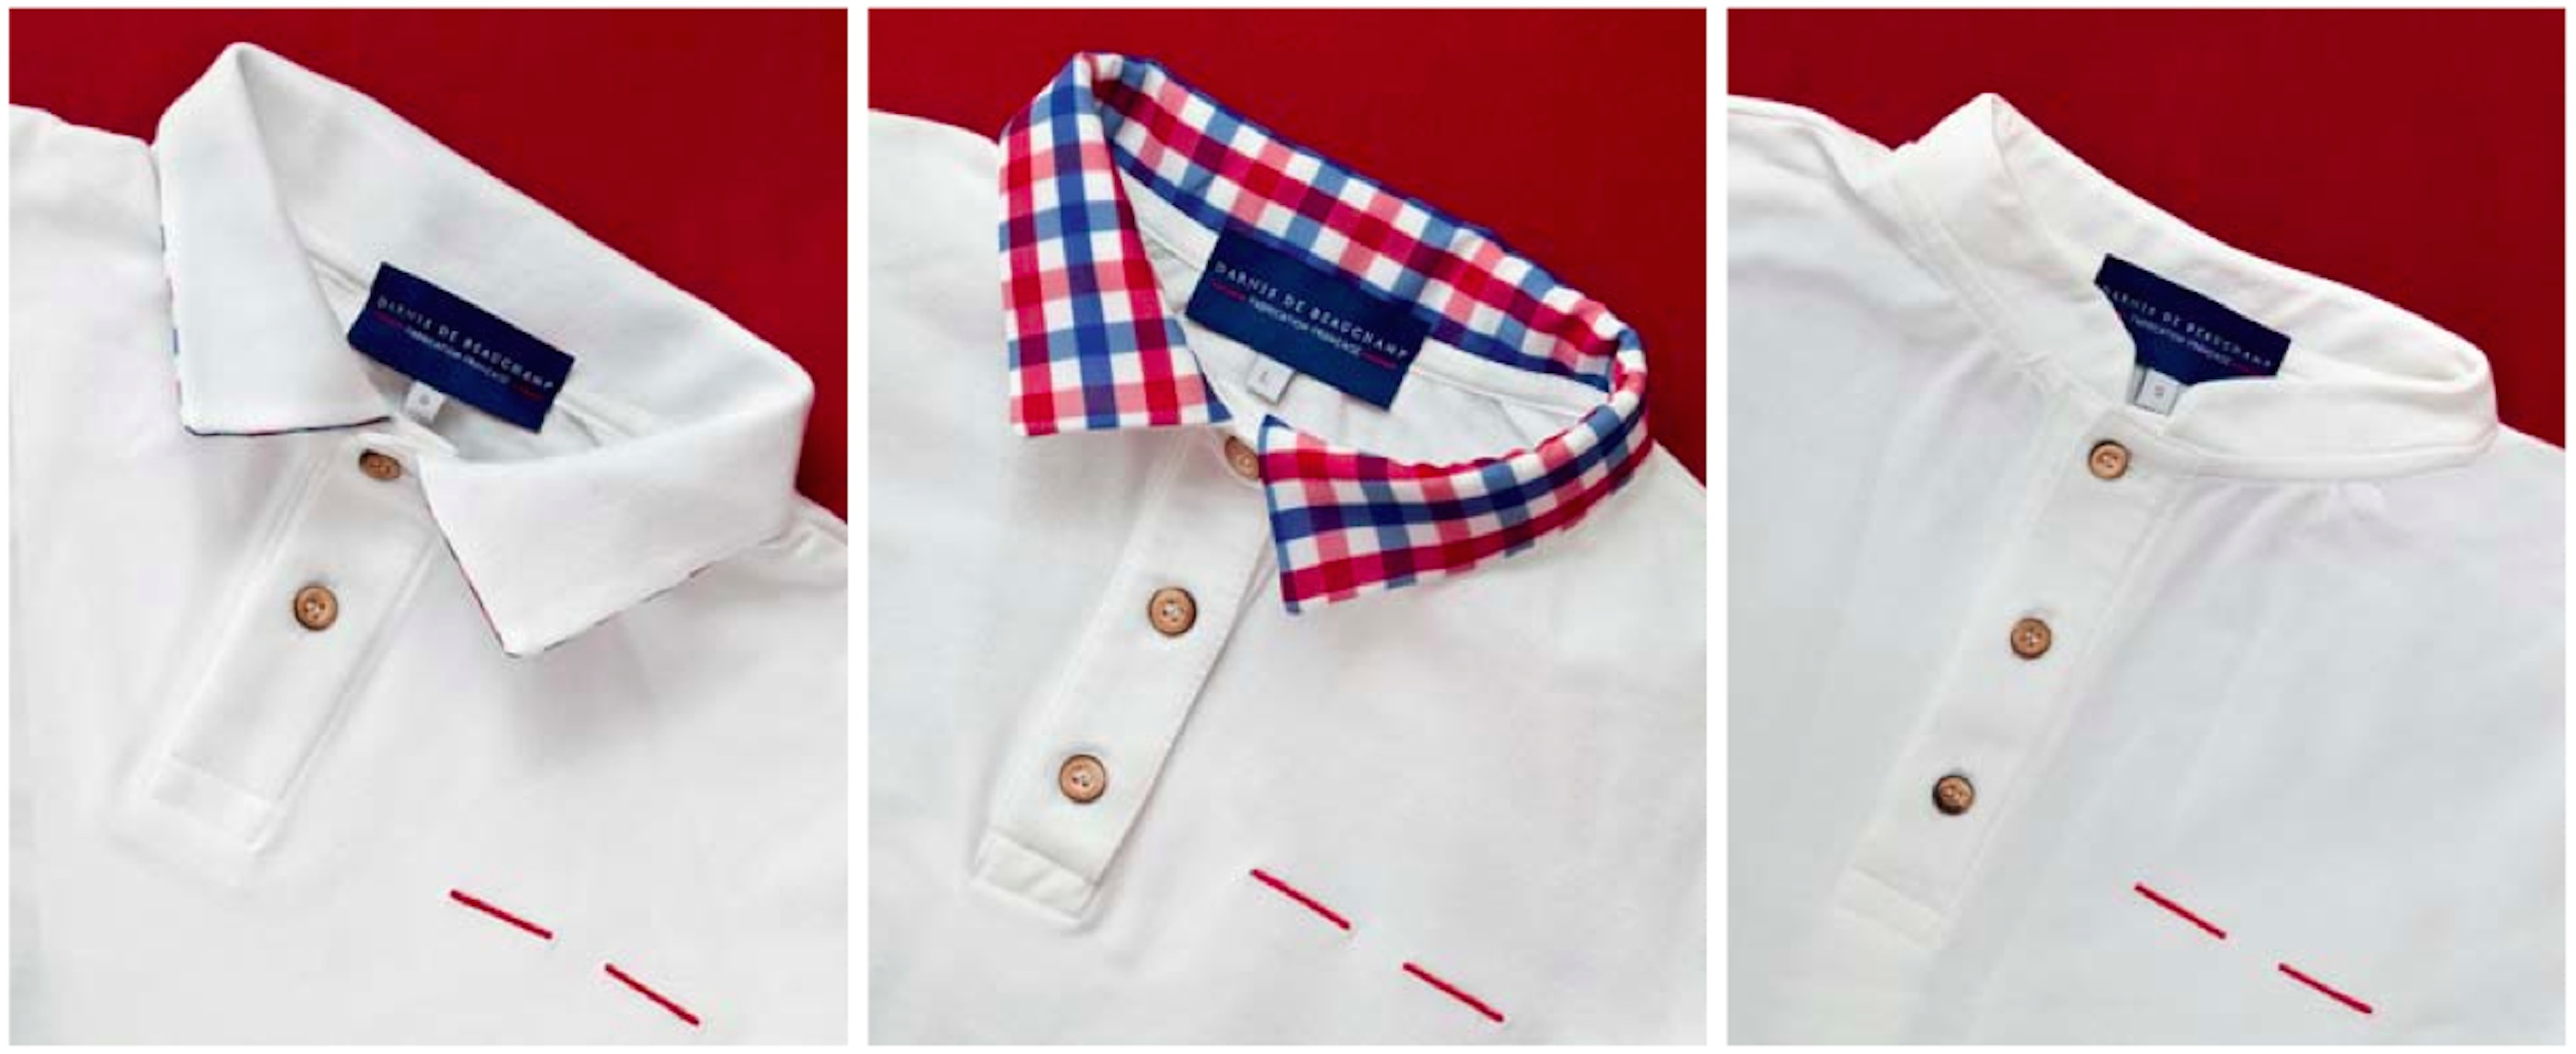 Polos Darnis de Beauchamp, made in France